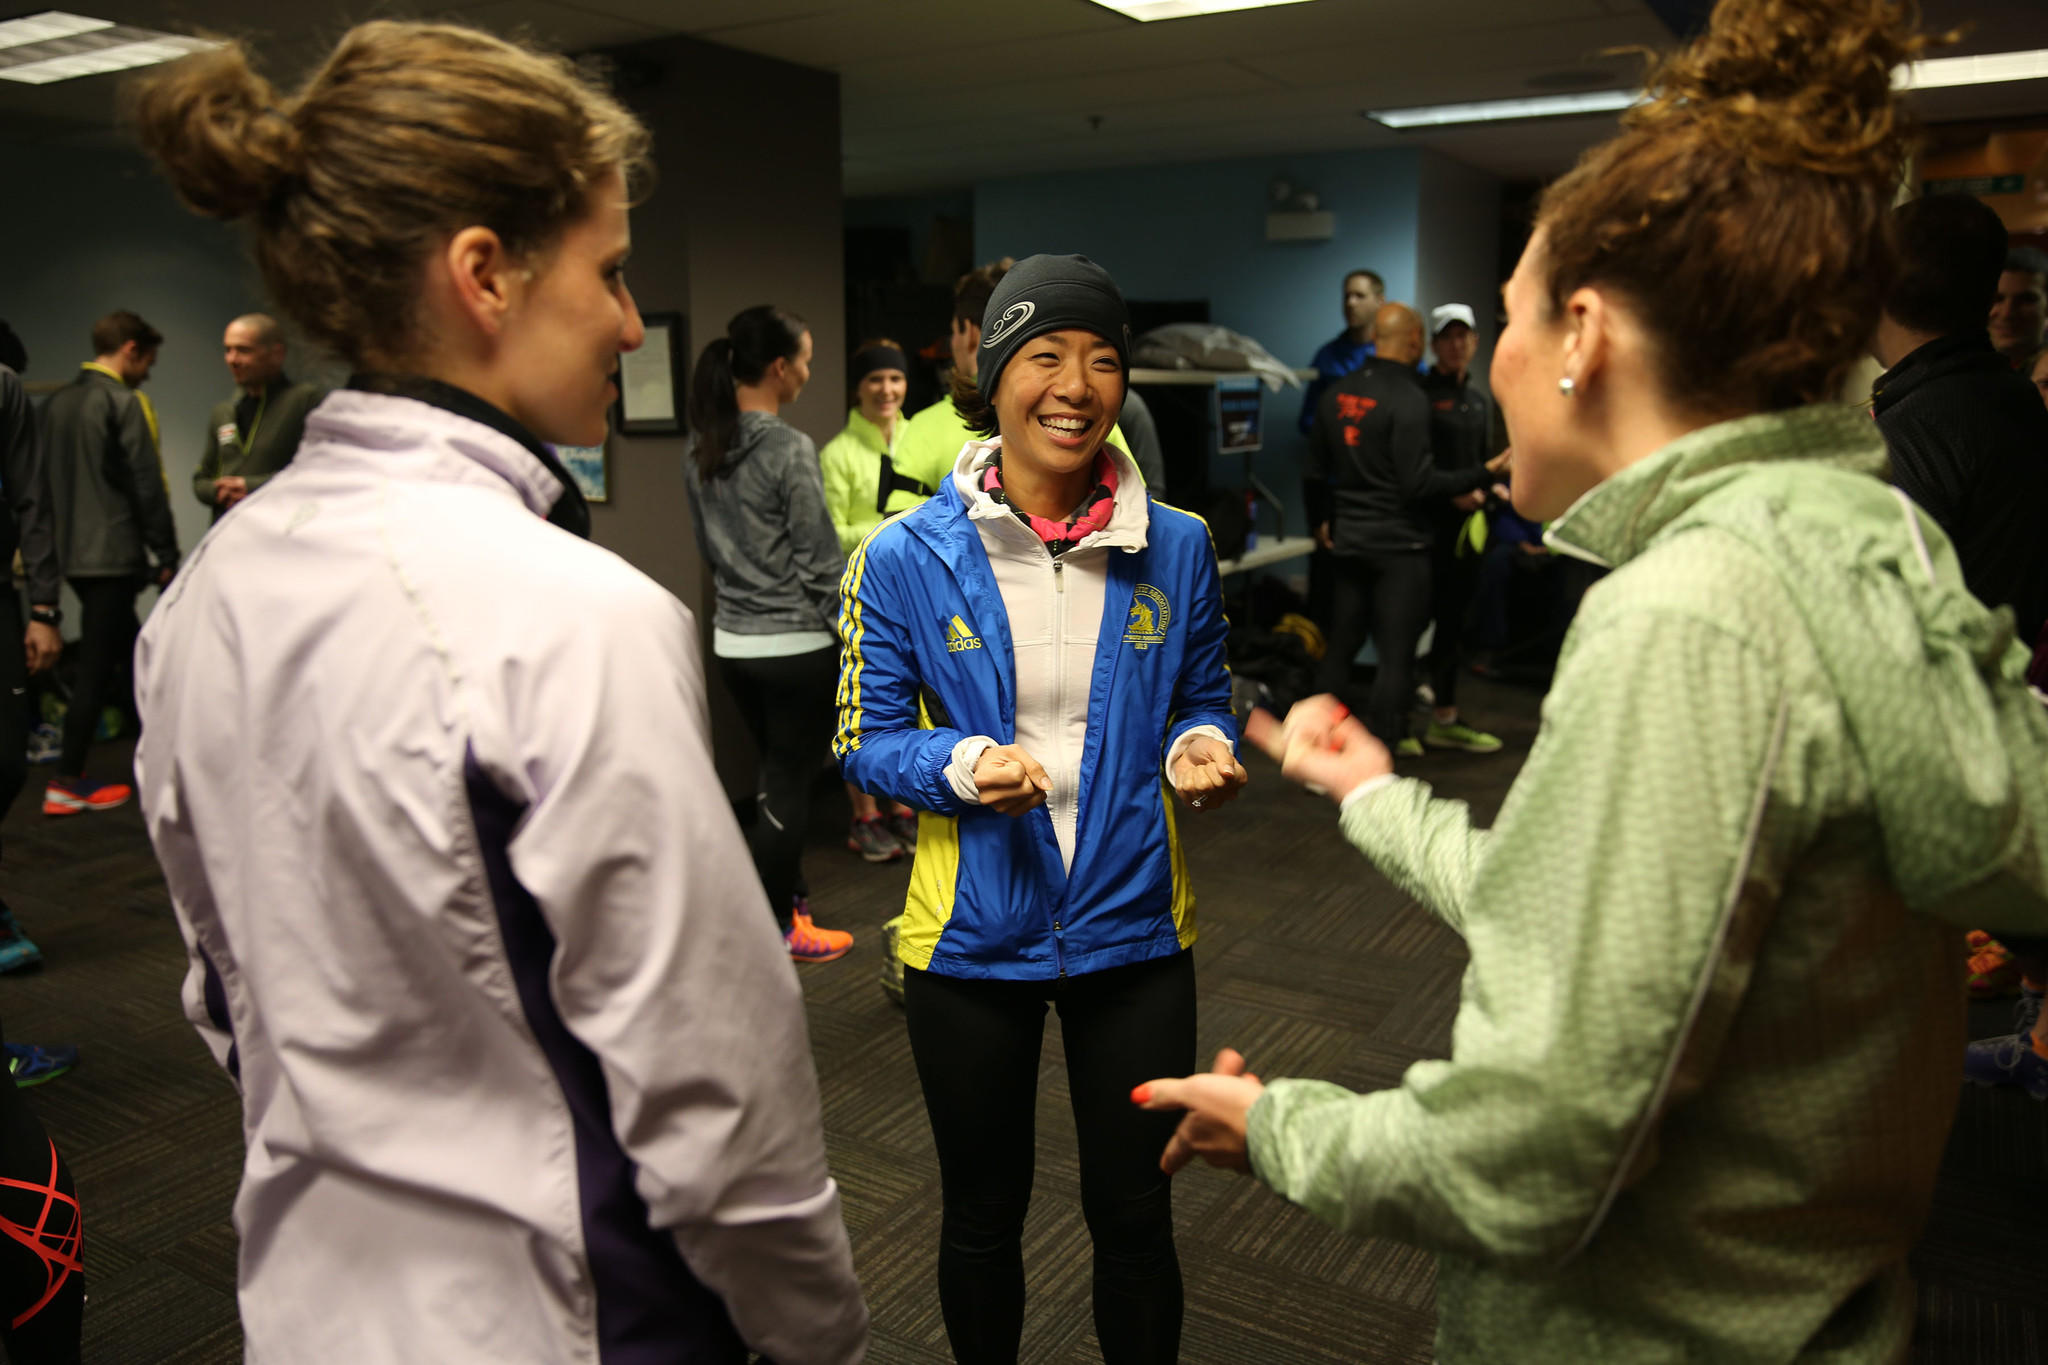 Jess Murphy, center, gathers with other runners at Fleet Feet Sports on North Wells Street in Chicago to train for the 2014 Boston Marathon despite having been in Boston during the 2013 marathon bombing there.